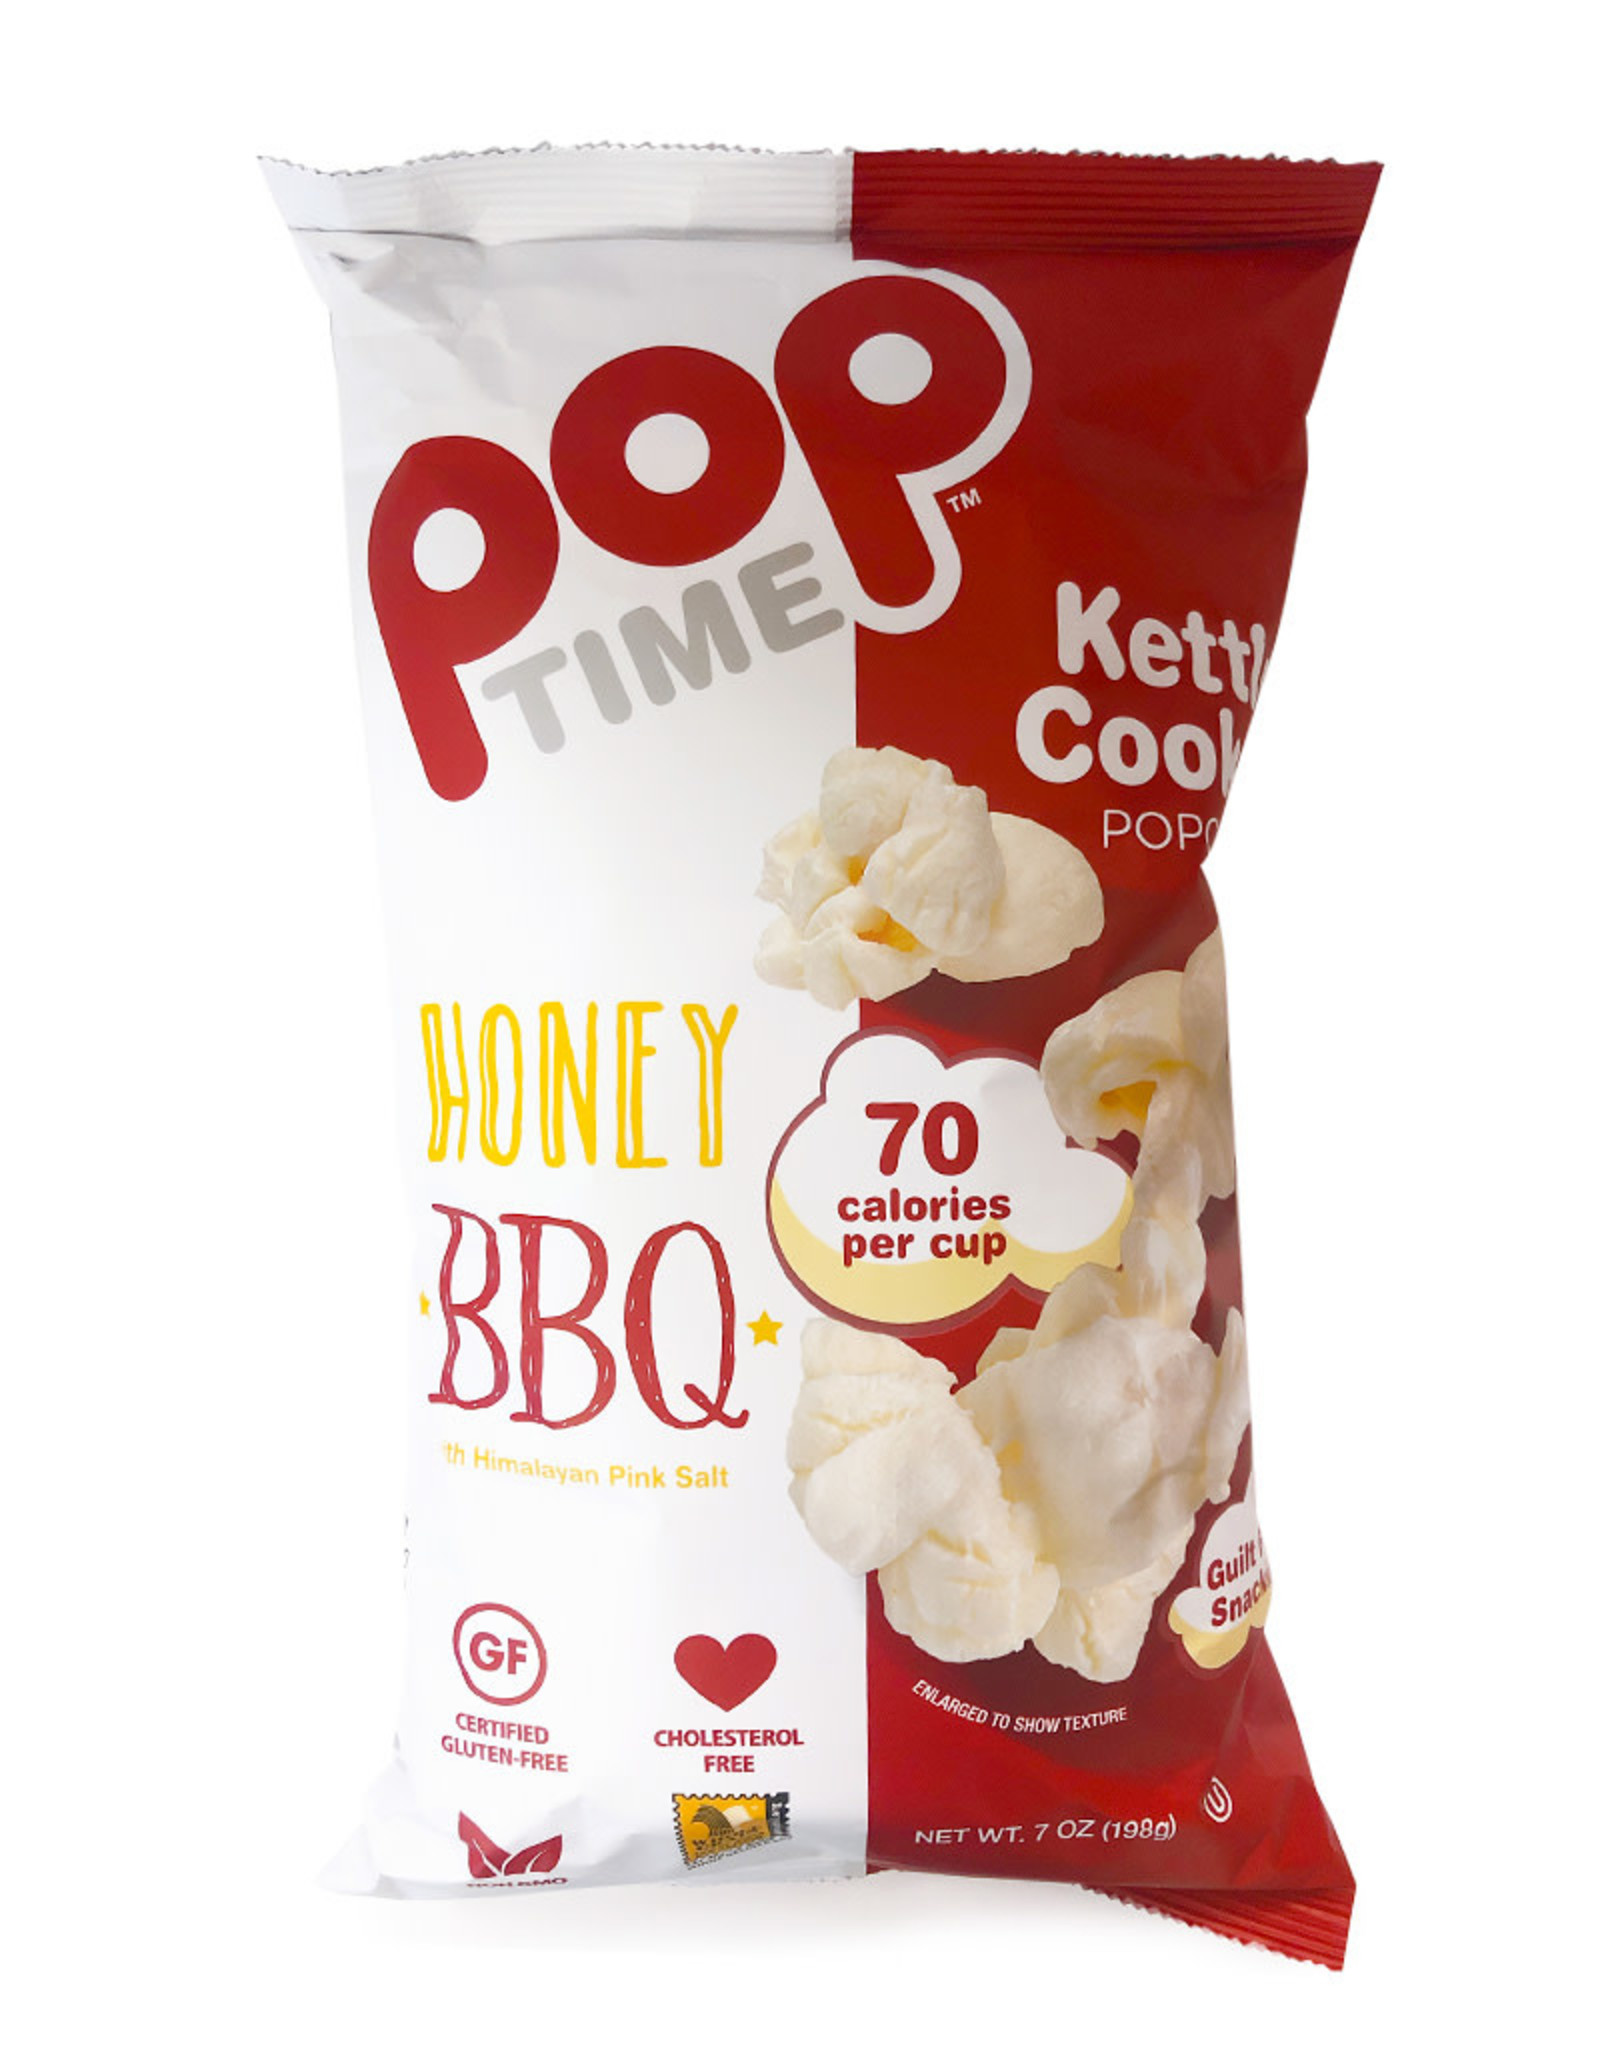 Pop Time Pop Time - Kettle Corn, Honey BBQ (198g)